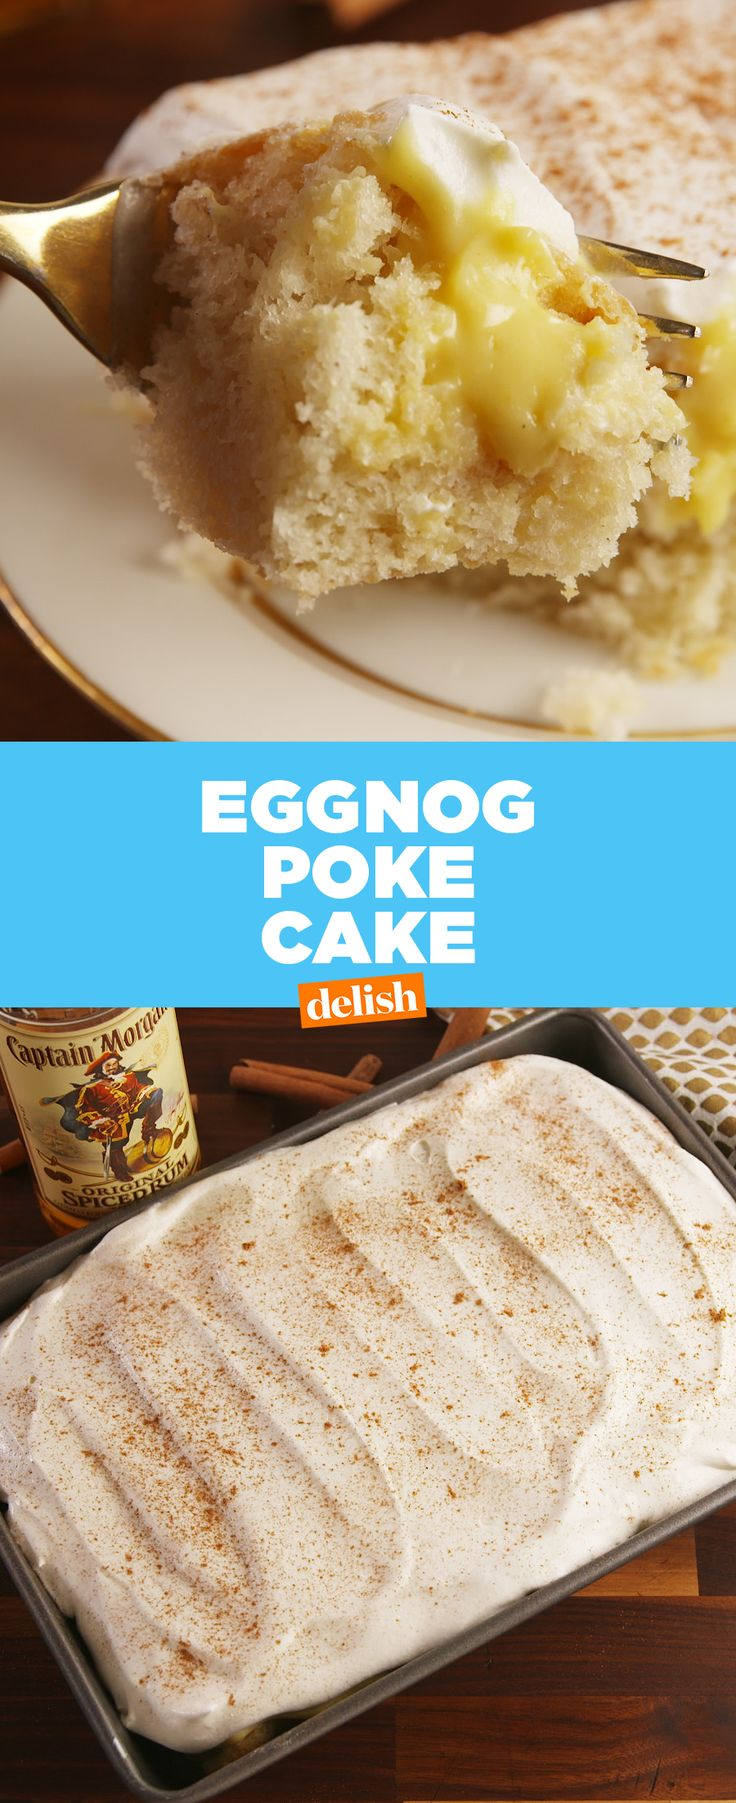 Even Eggnog haters will love this boozy poke cake.